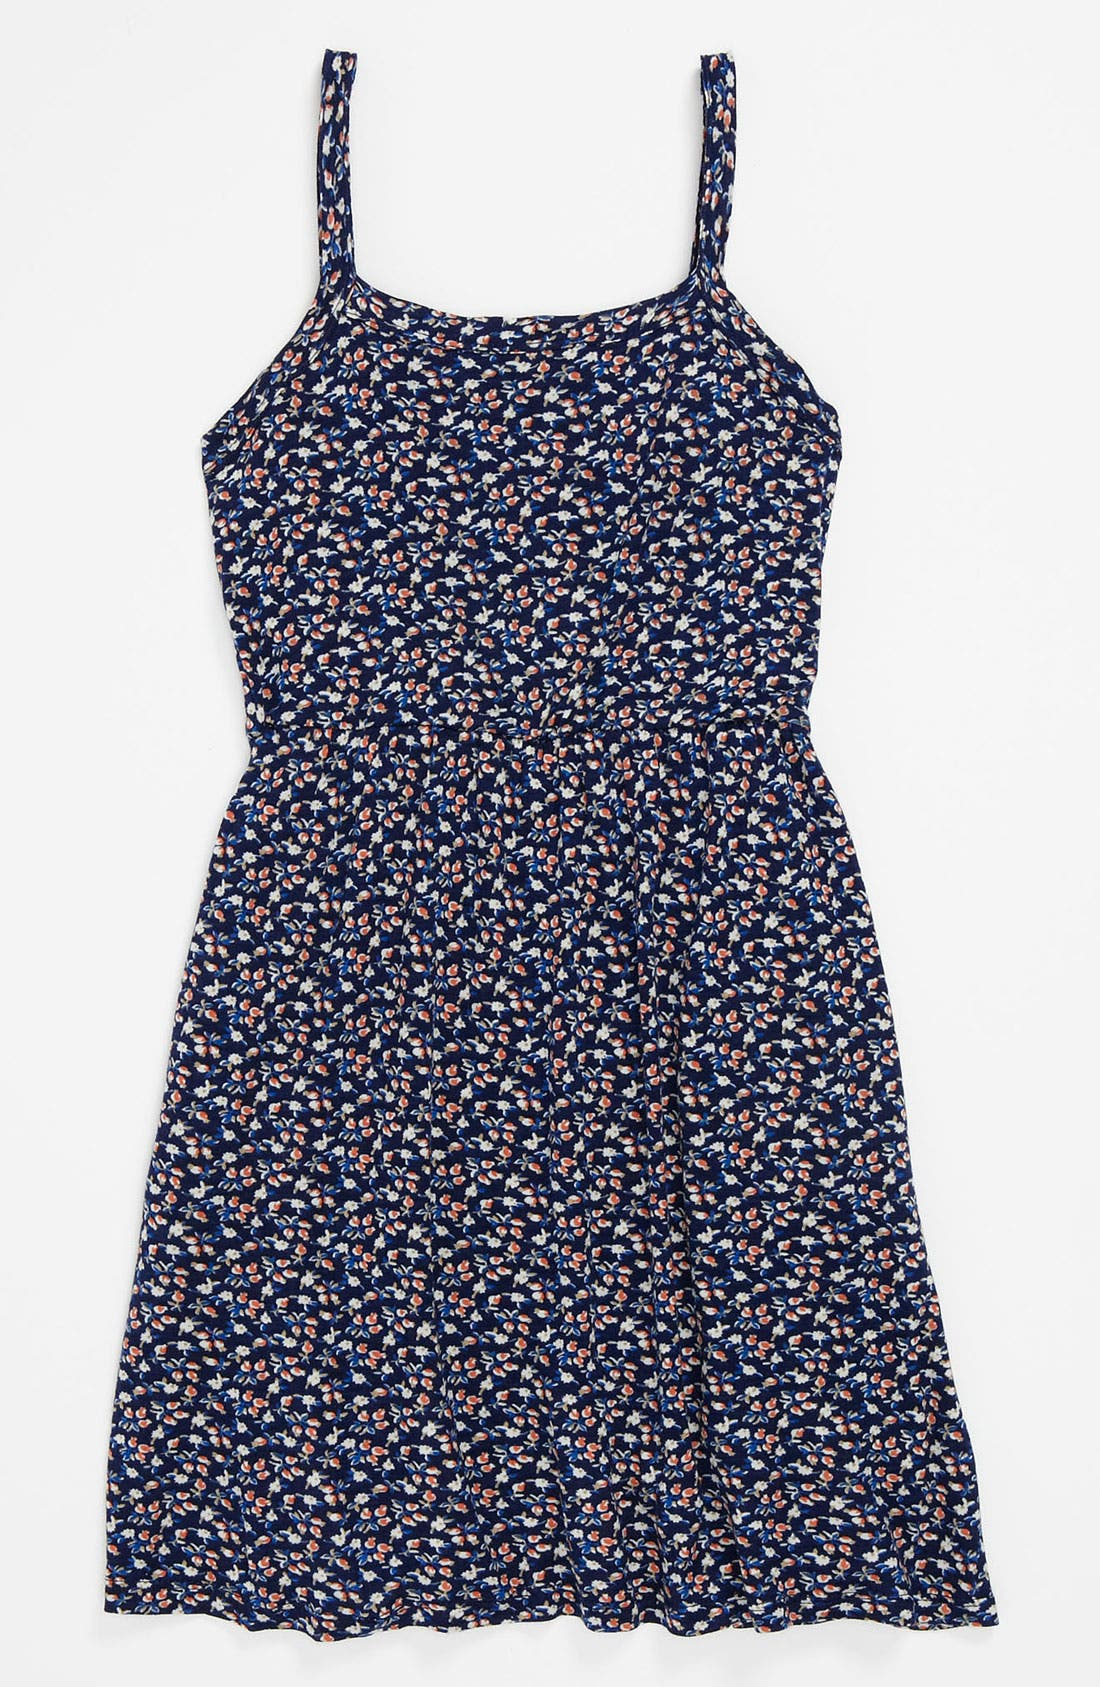 Main Image - Mia Chica Sleeveless Dress (Big Girls)